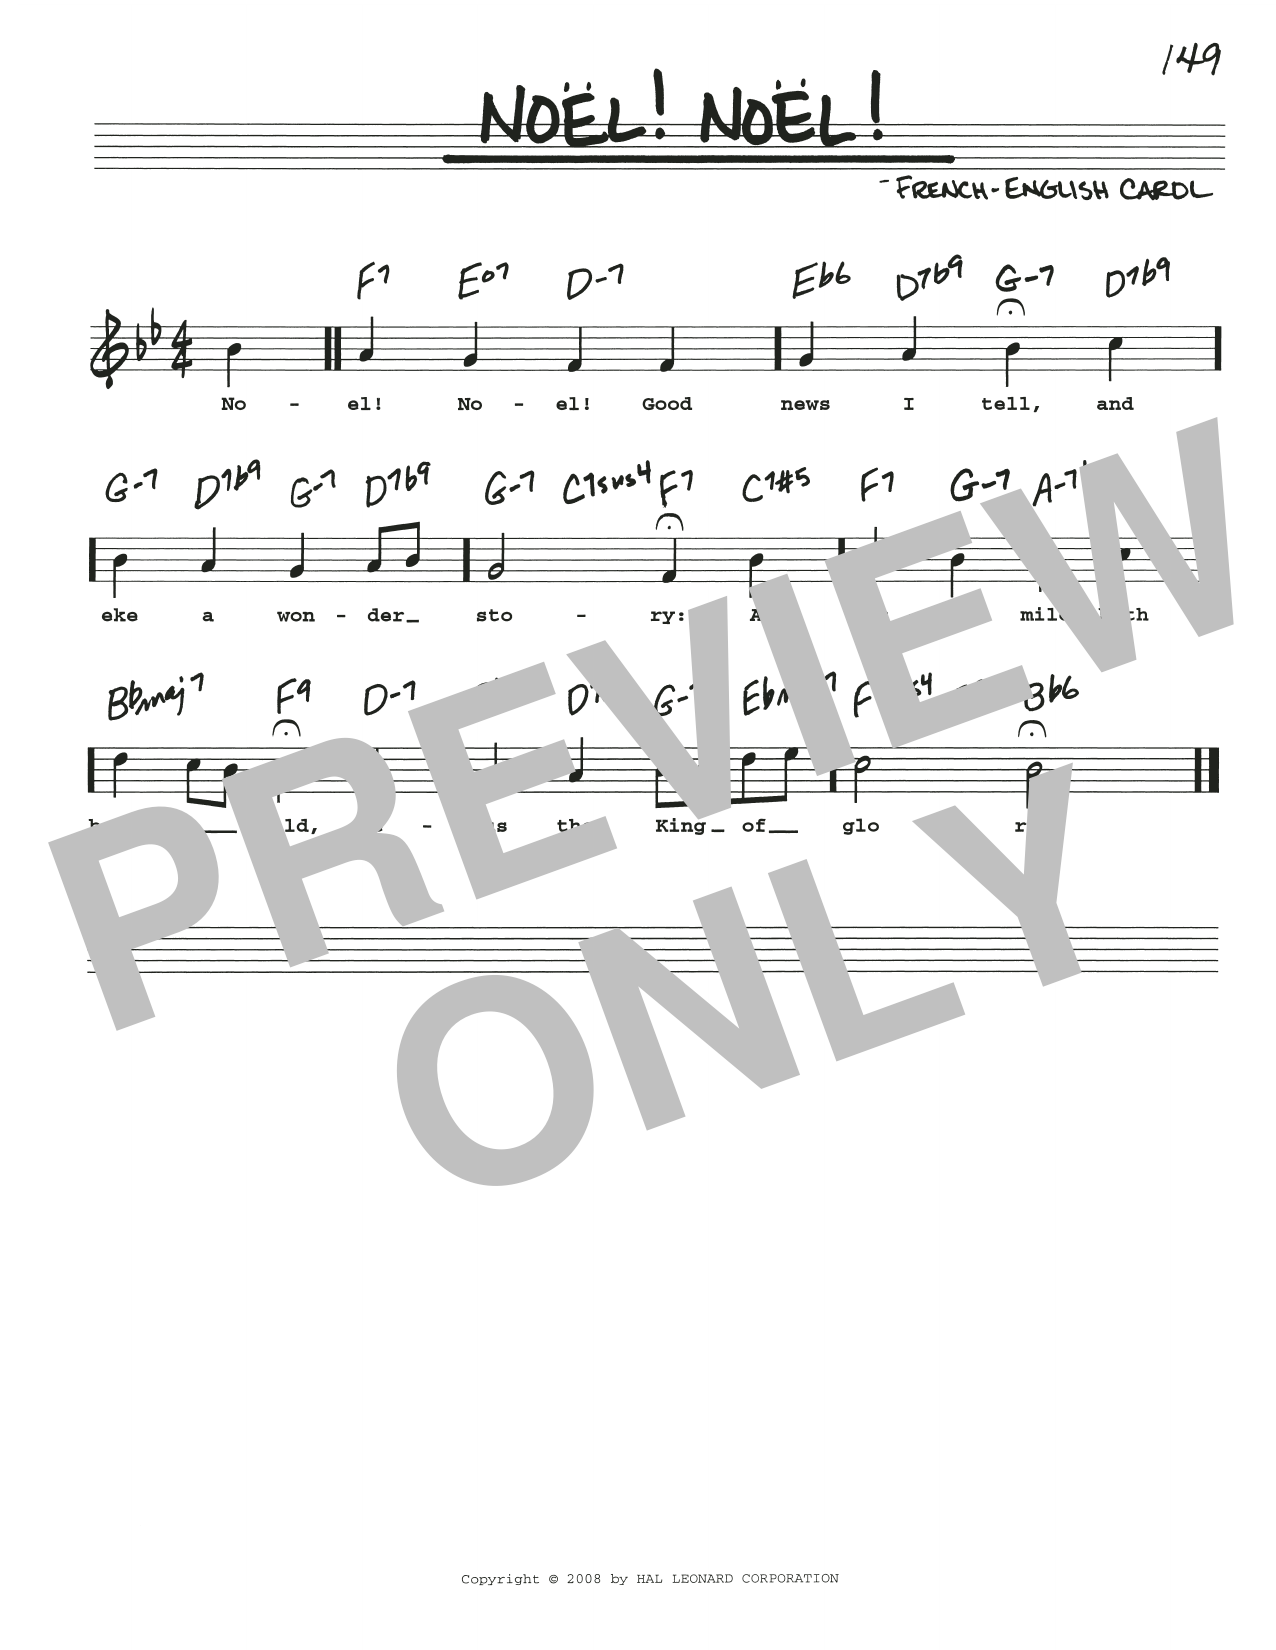 Noel! Noel! (Real Book – Melody, Lyrics & Chords)